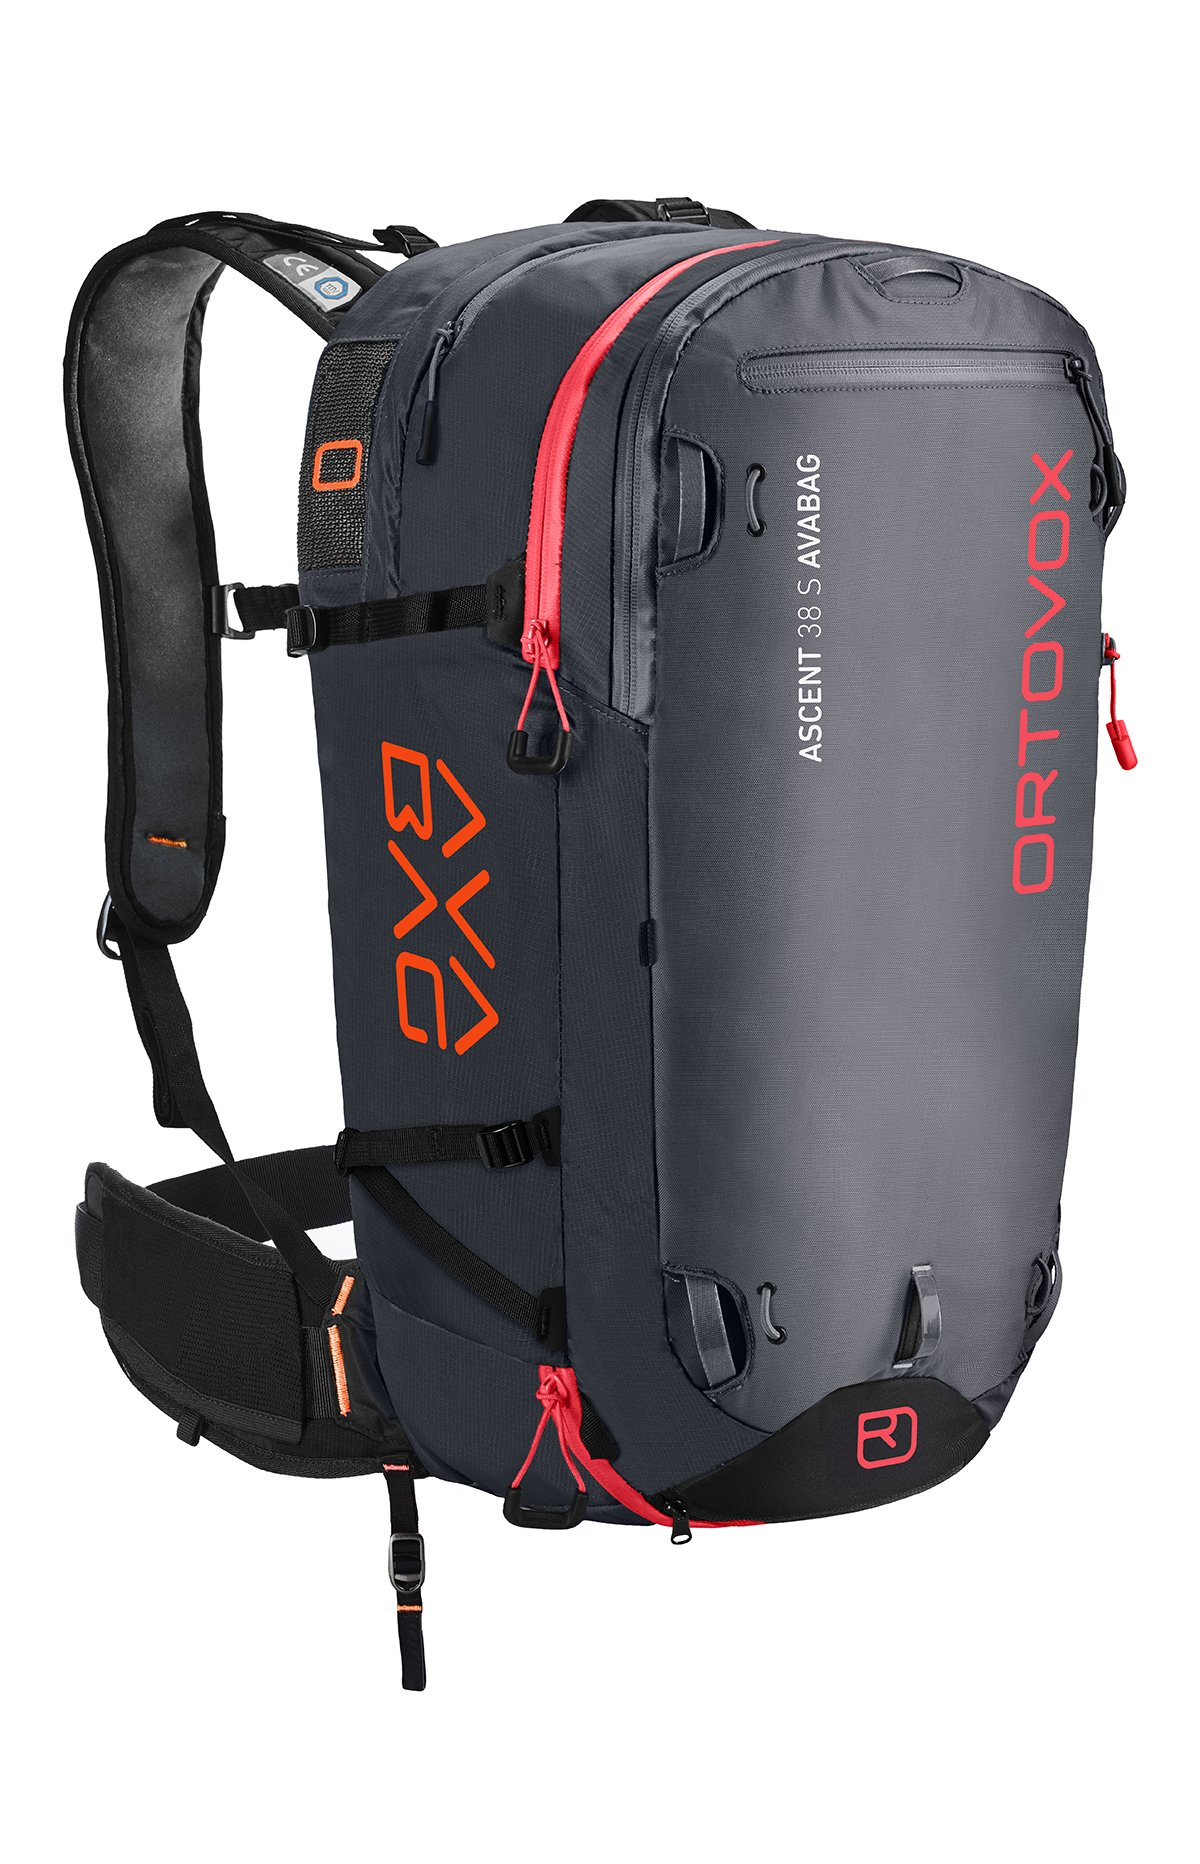 Front View - Black Anthracite - Non Inflated - Ortovox Ascent 38 S Avabag Backpack